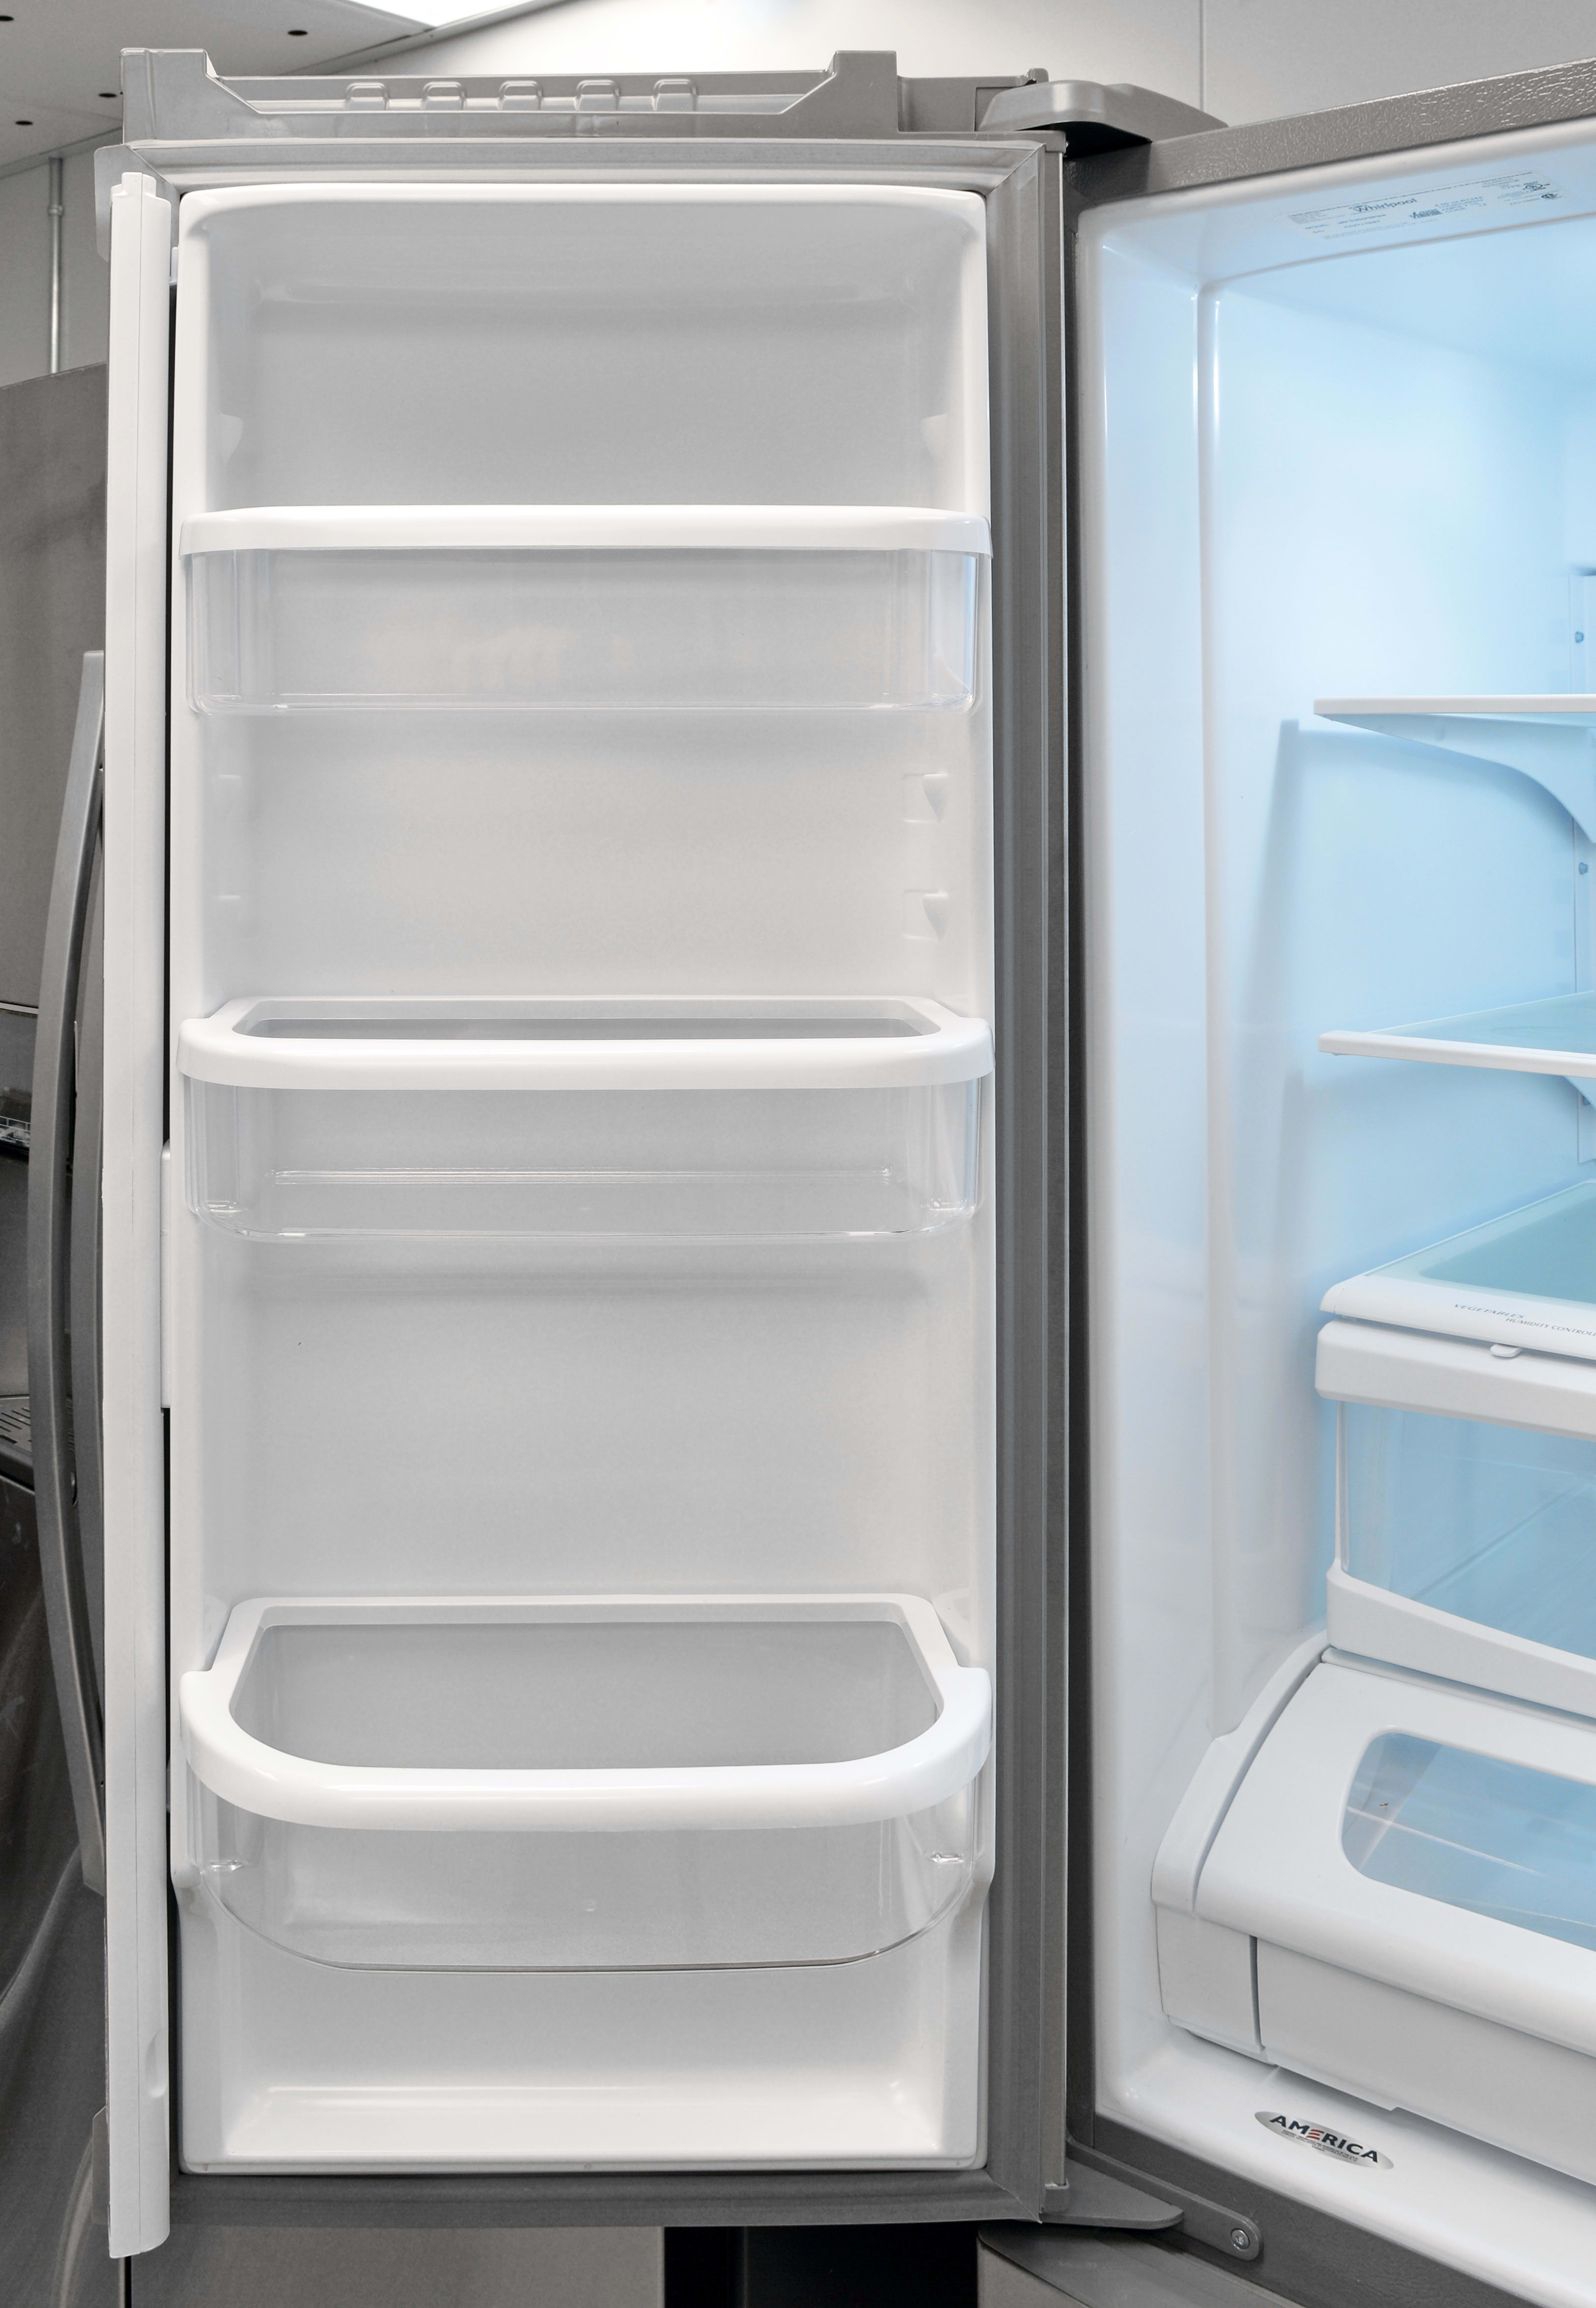 Whirlpool wrf535smbm refrigerator review reviewed refrigerators with no ice dispenser the whirlpool wrf535smbms left fridge door is left available for practical rubansaba